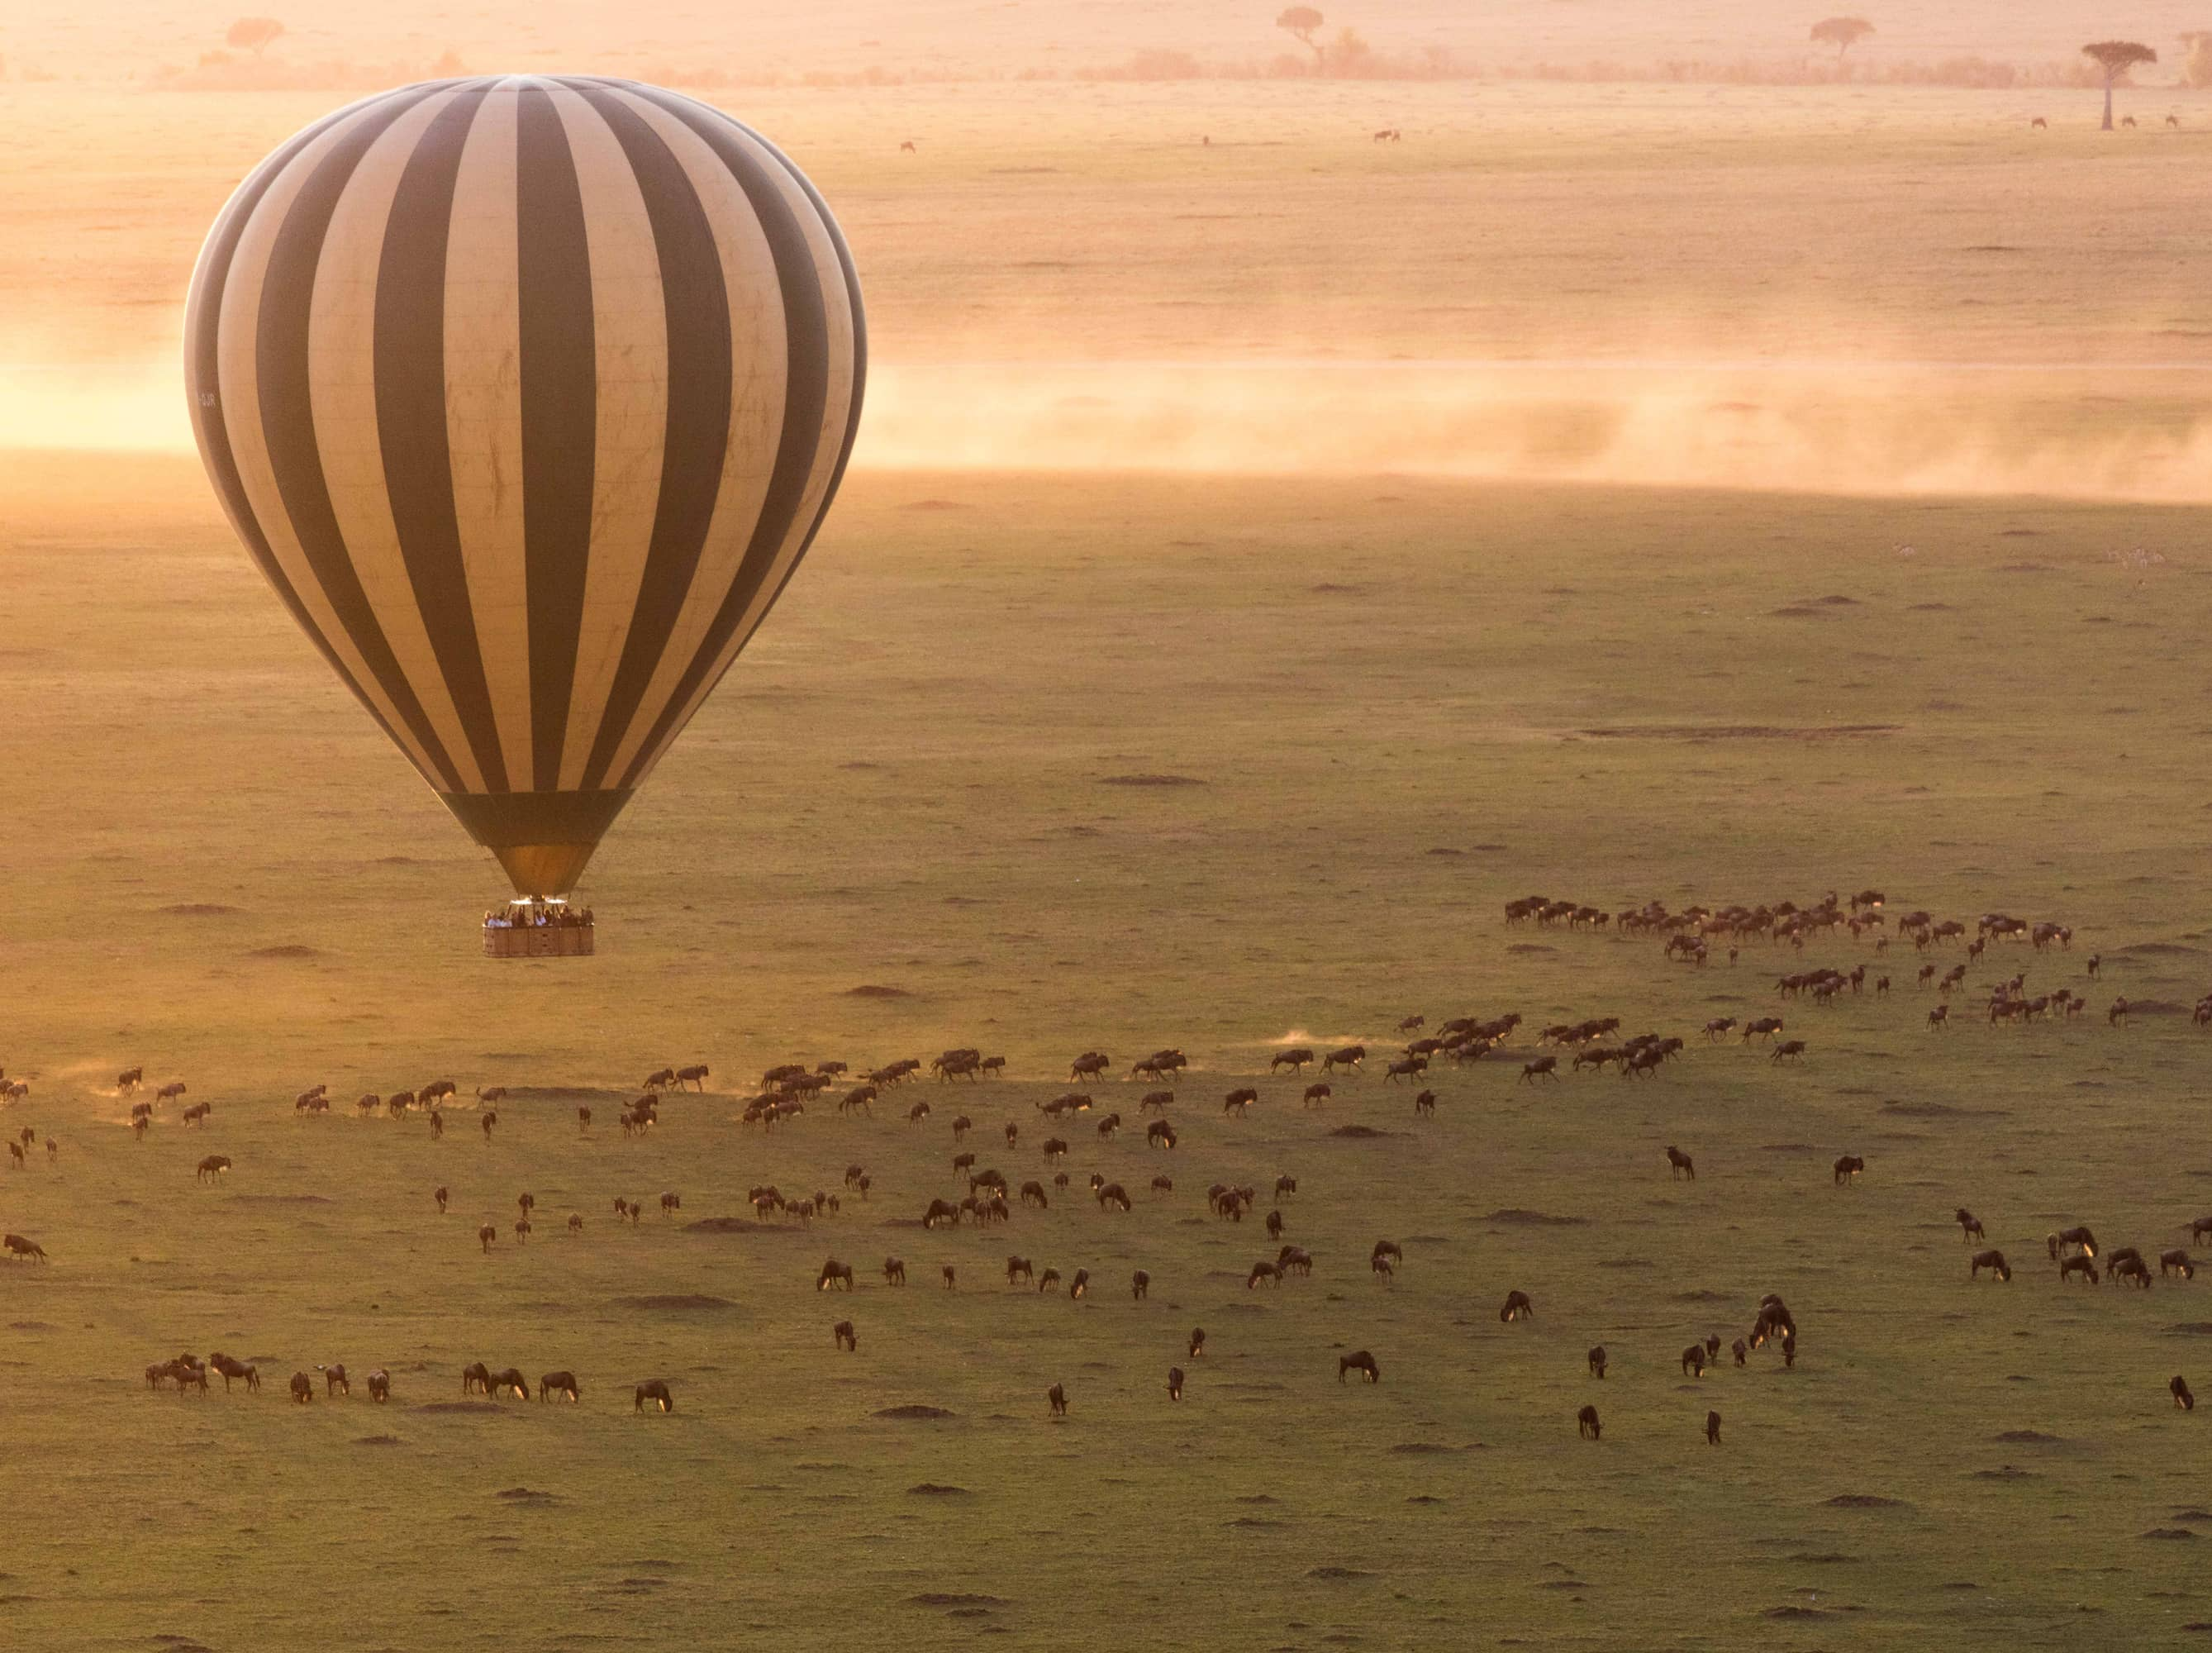 Experience an unforgettable sunrise safari from the sky